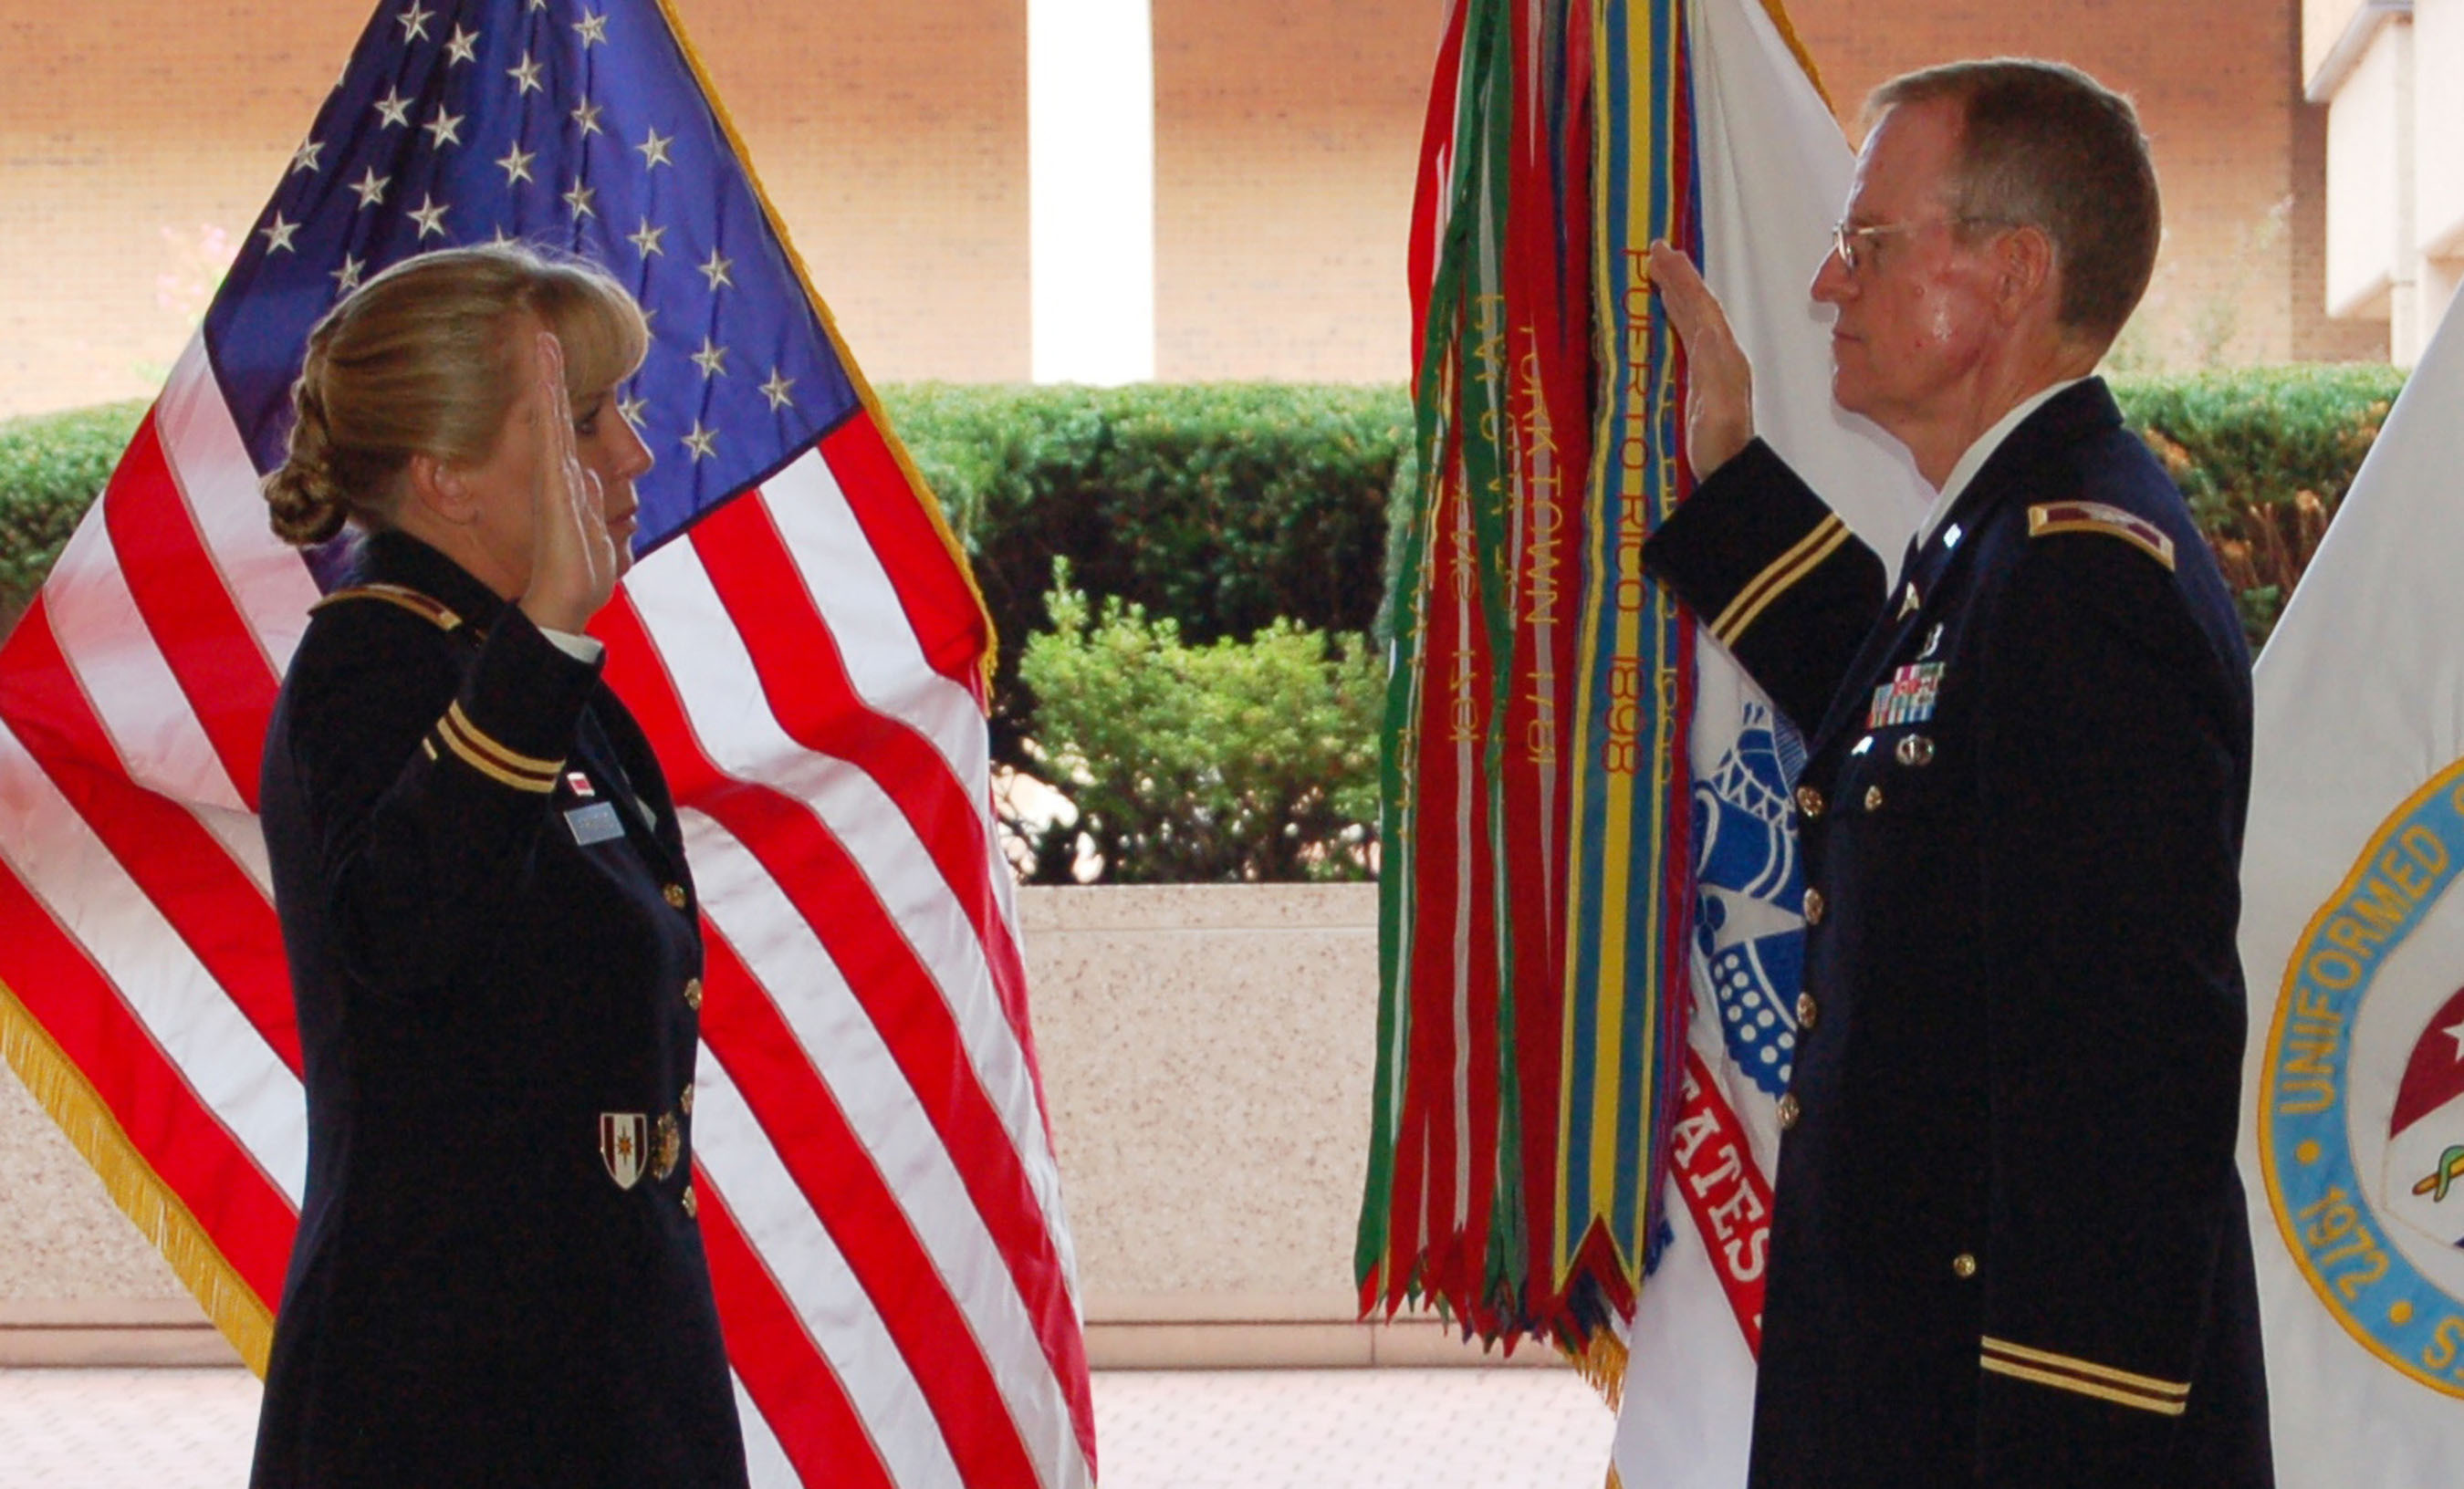 Dr. Frederick Lough, right, a cardiothoracic surgeon, takes the Oath of Office during a ceremony at the Uniformed Services University of the Health Sciences in Bethesda, Md. on 9/11/2013. Col. Karrie Fristoe, commander of the Army Medical Recruiting Brigade, officiates. Photo credit: Official U.S. Army photo by Denise Susnir(PRNewsFoto/U.S. Army Medical Recruiting Brigade) (PRNewsFoto/)